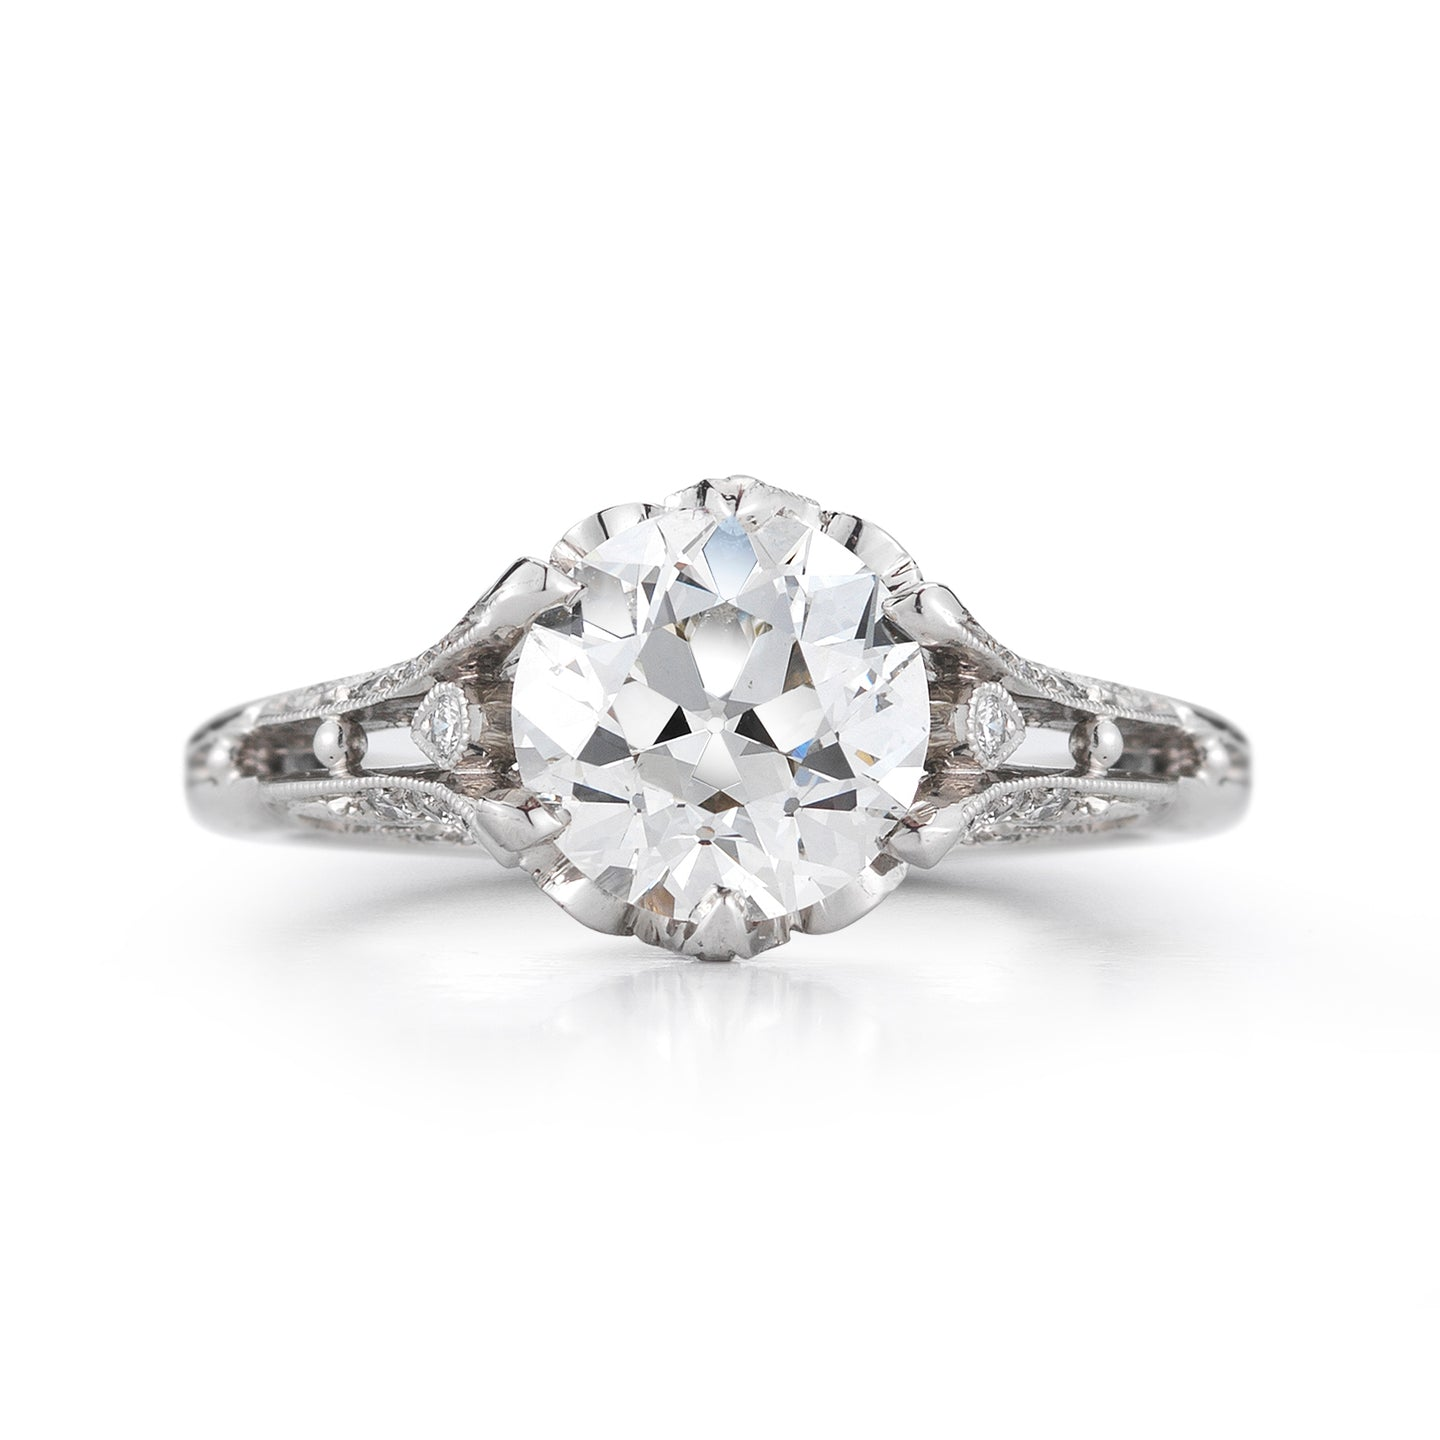 31597 European Ideal Cut Diamond Fountain Ring